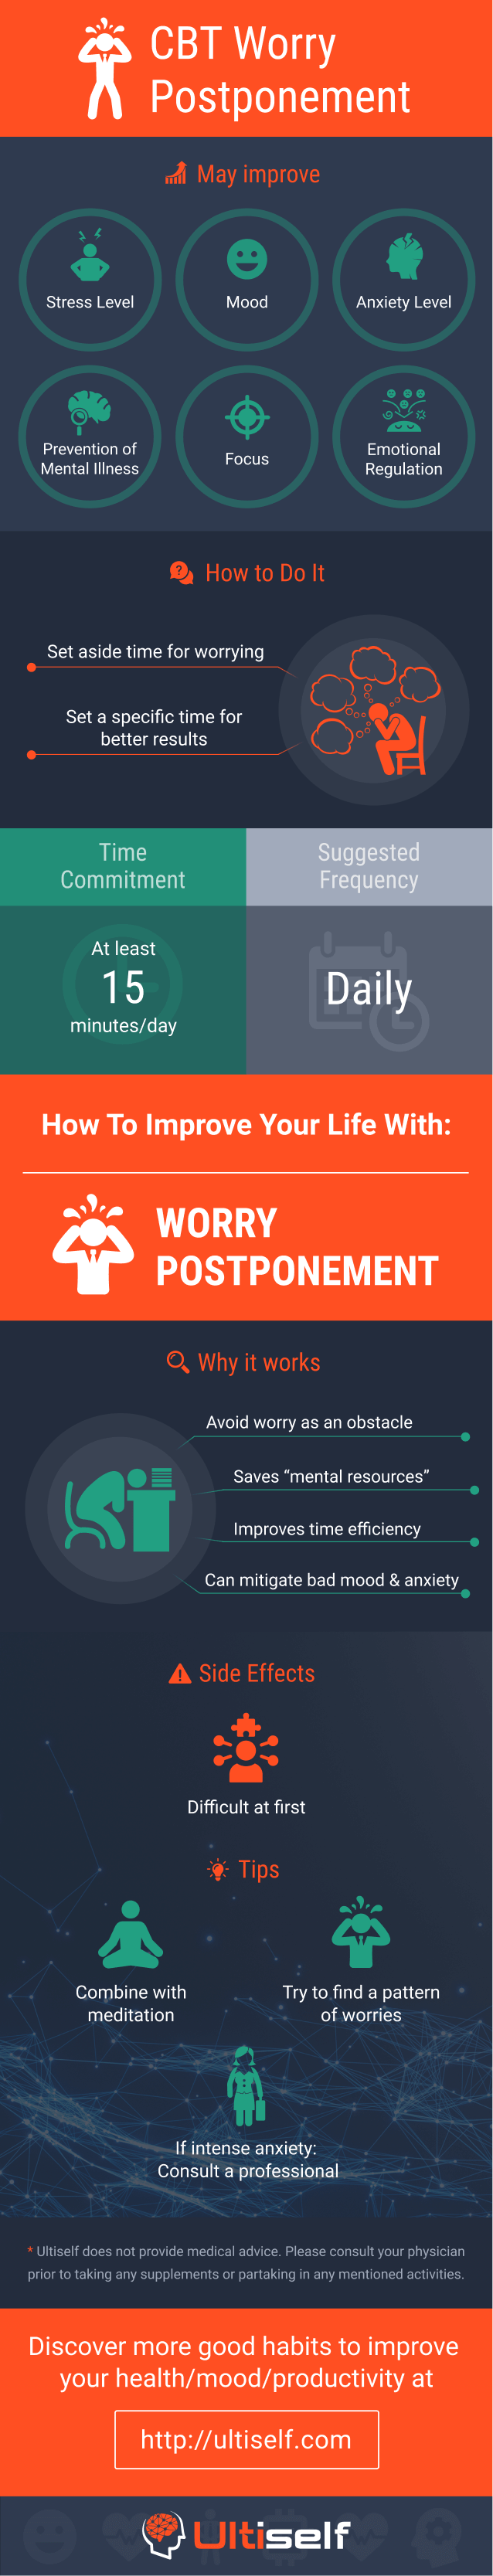 CBT Worry Postponement infographic